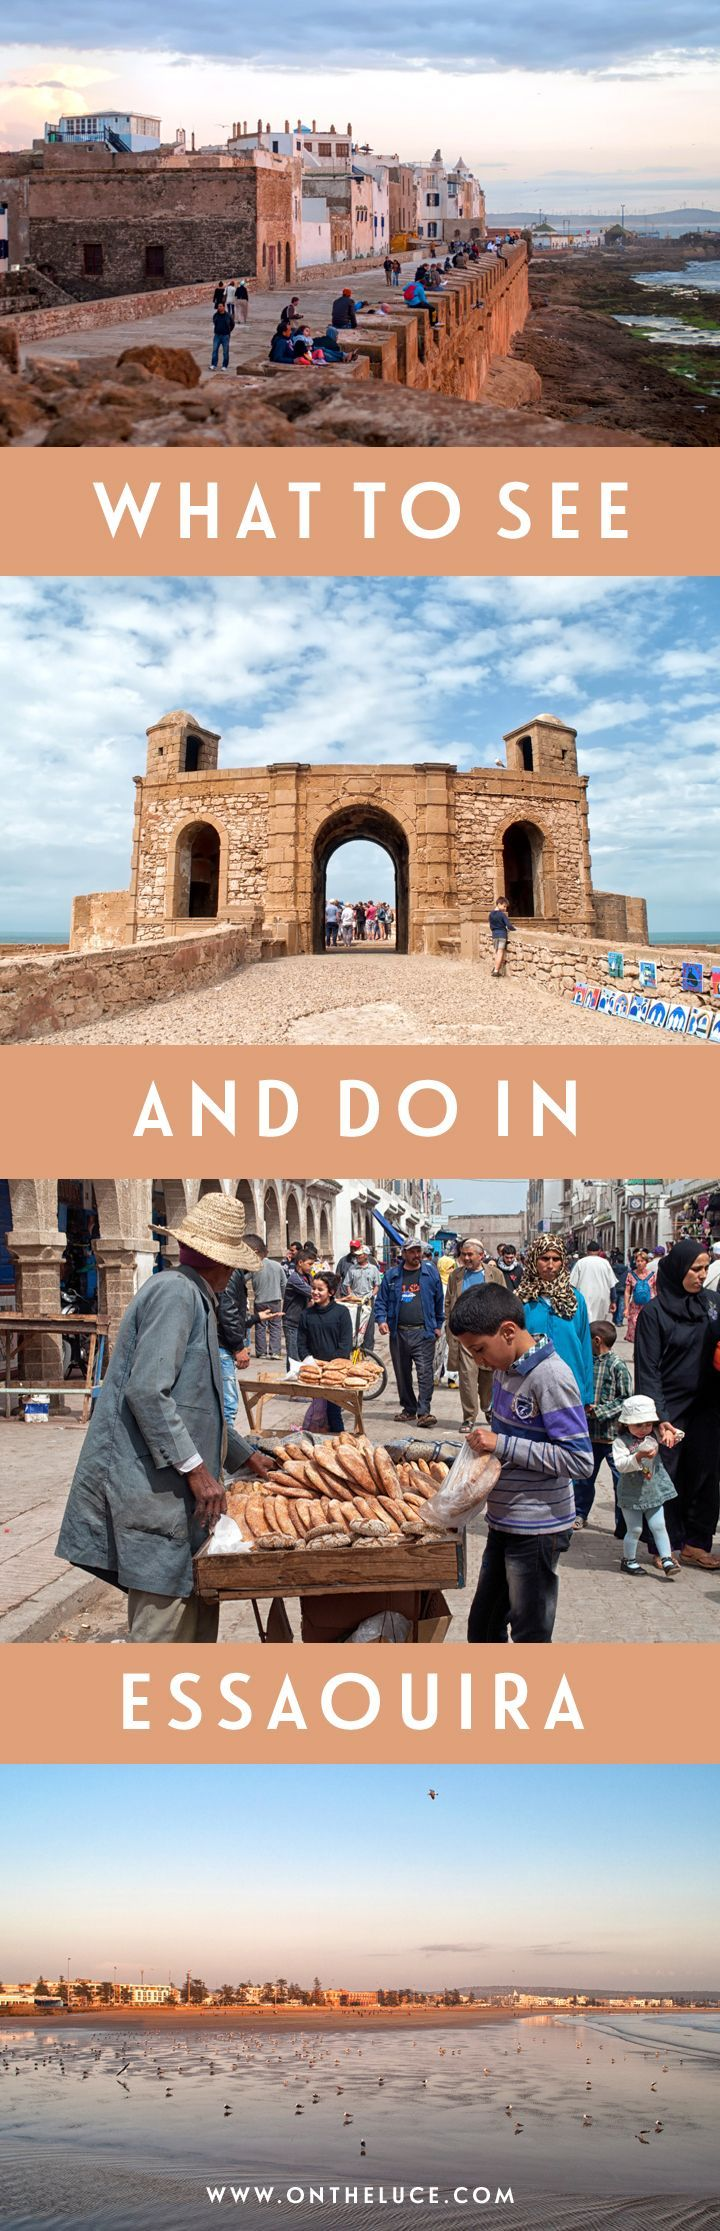 What to see and do in the Moroccan coastal city of Essaouira – from cookery classes and gnawa music to kite surfing and watching sunset from the city walls.